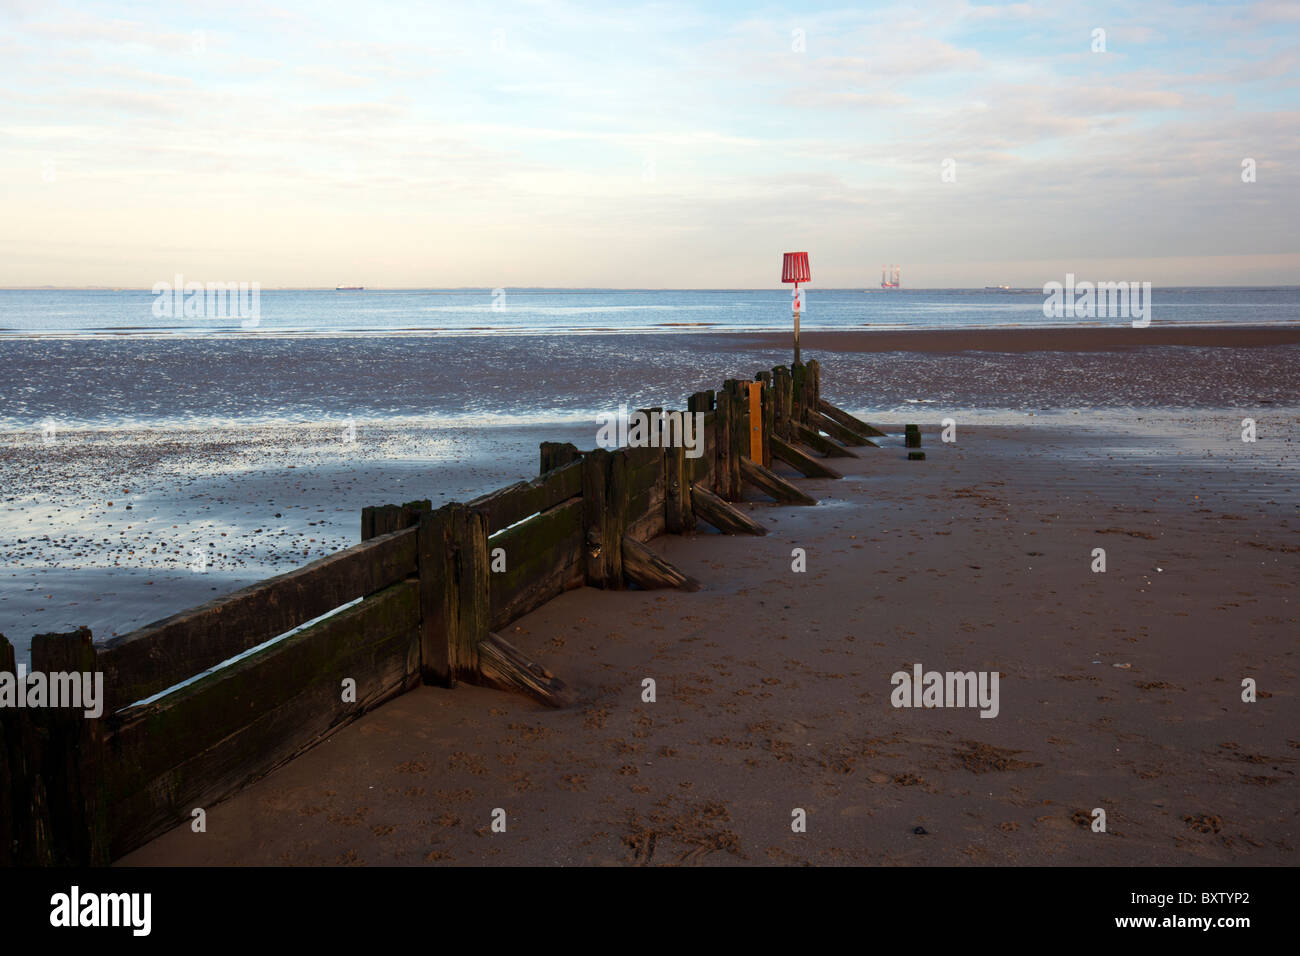 Cleethorpes sea front, sea defences looking out to sea on the Humber Estuary blue sky day - Stock Image